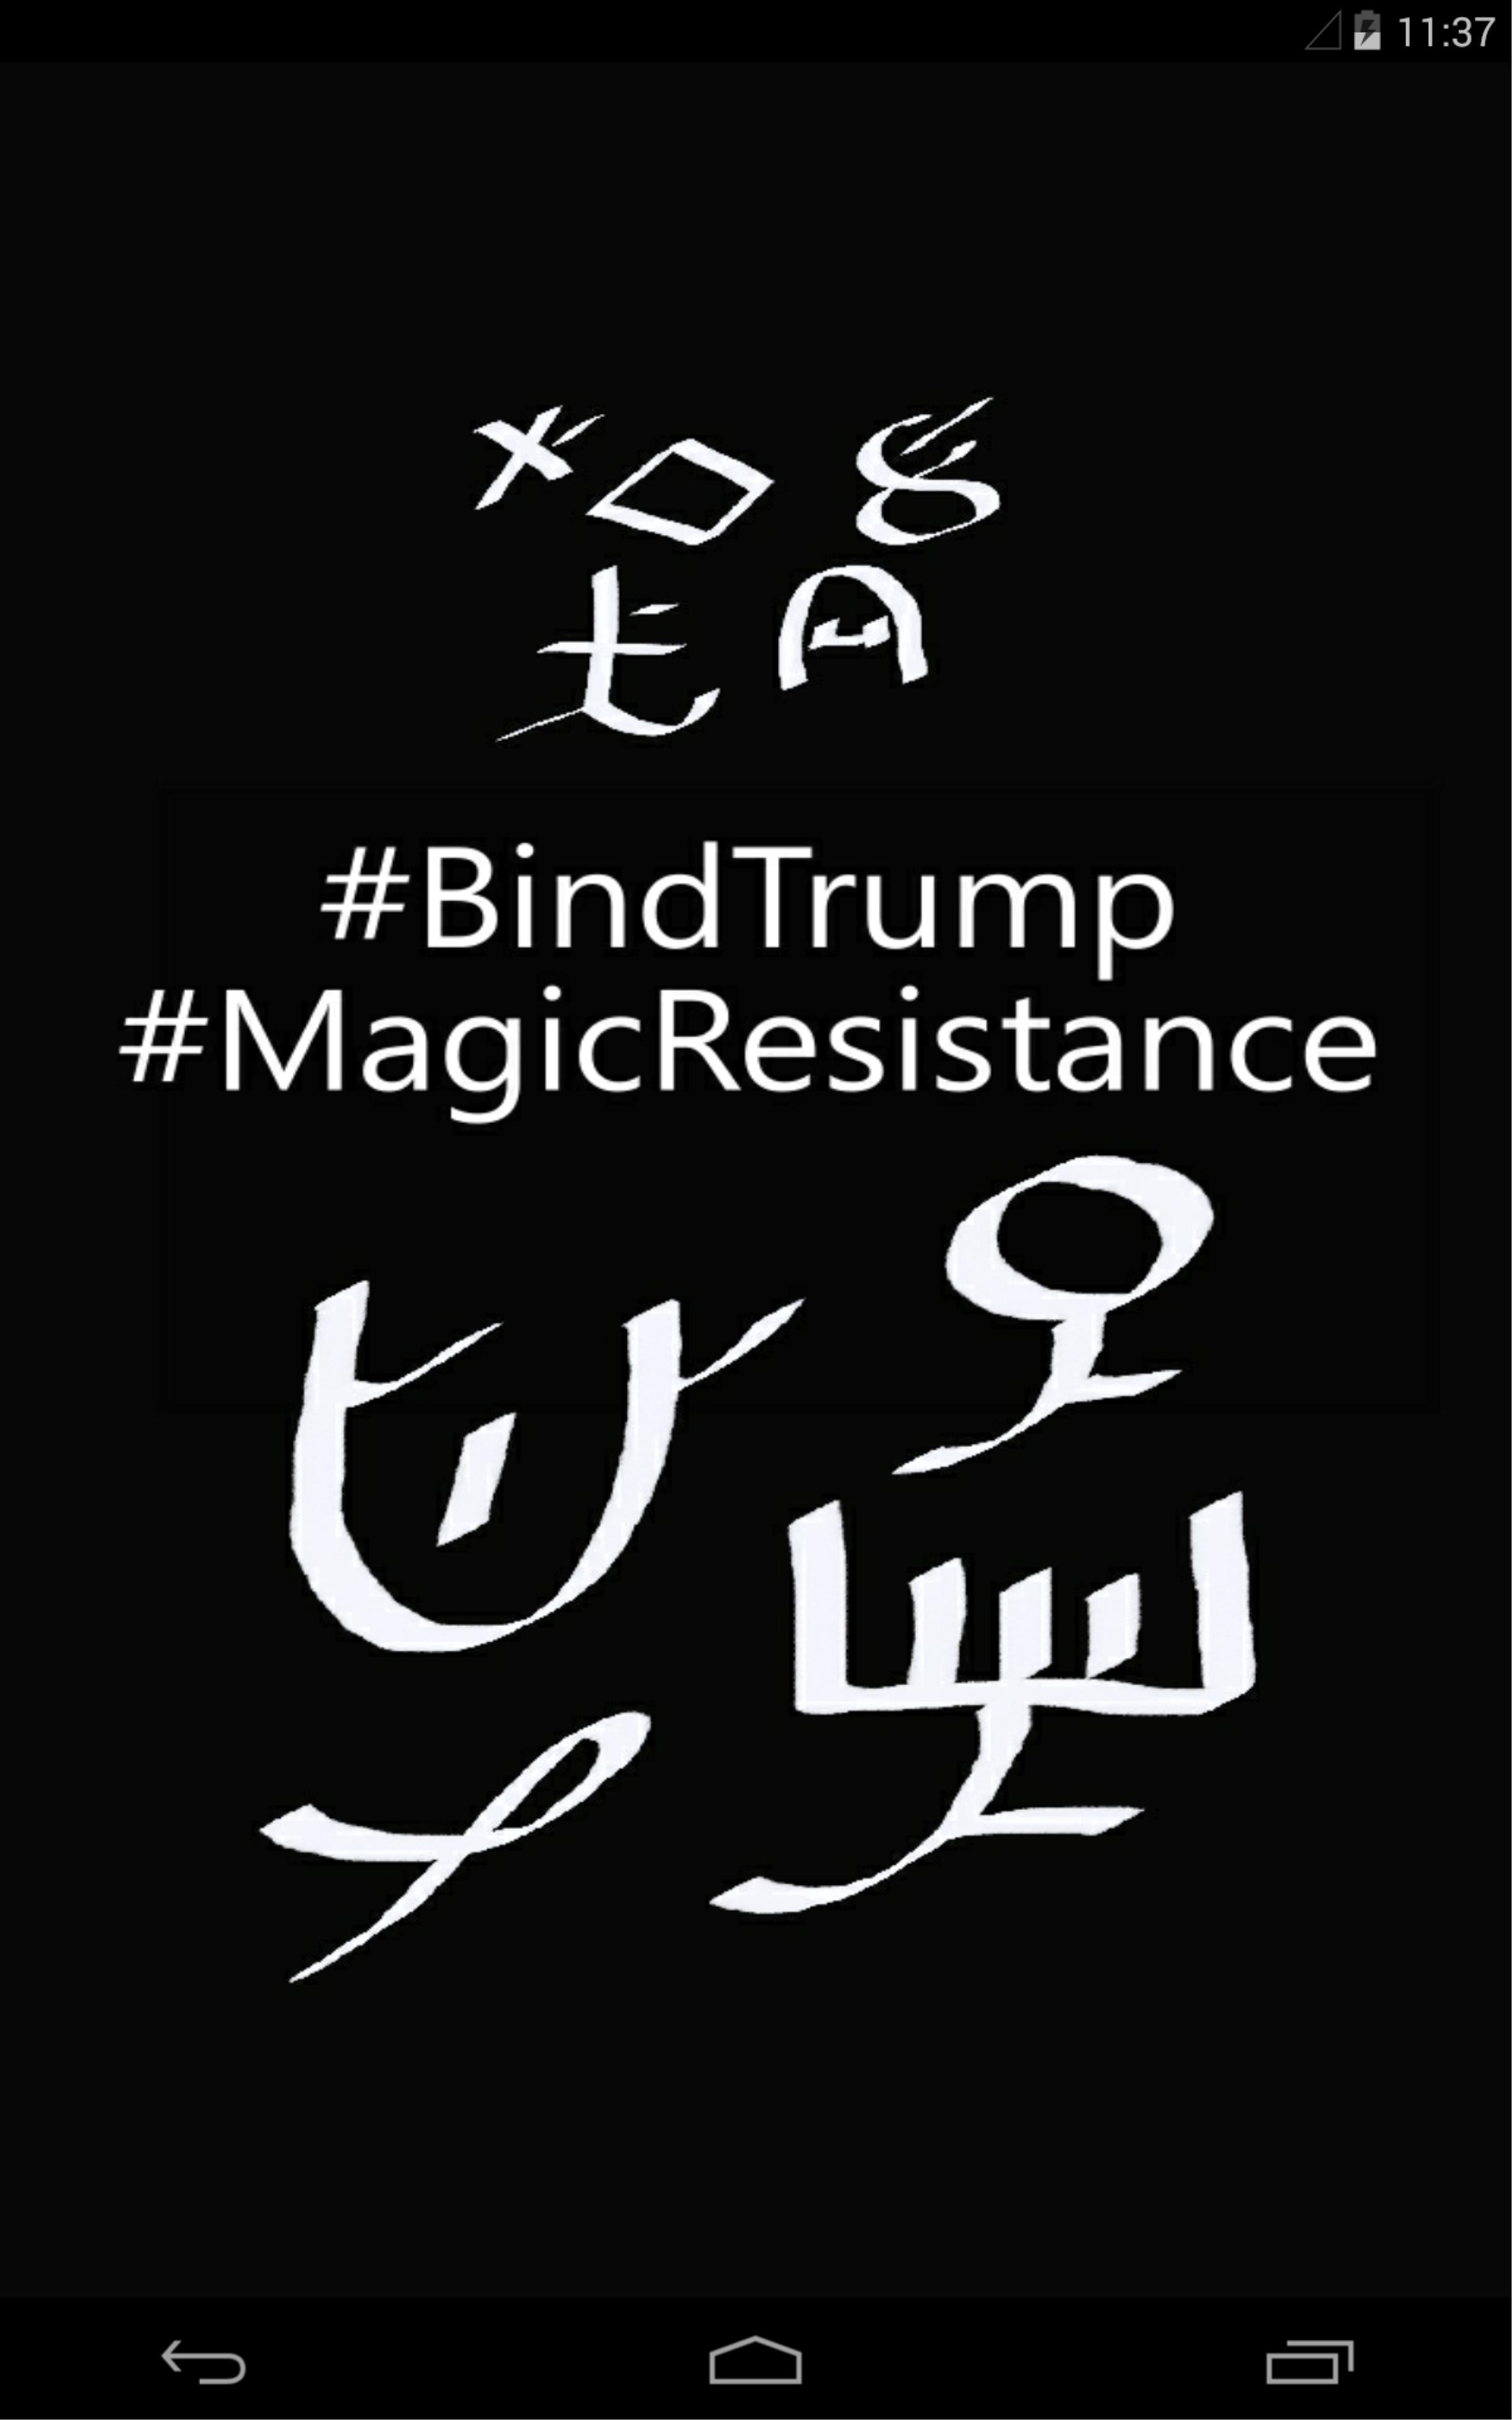 Bind Trump Magic Resistance for Android - APK Download